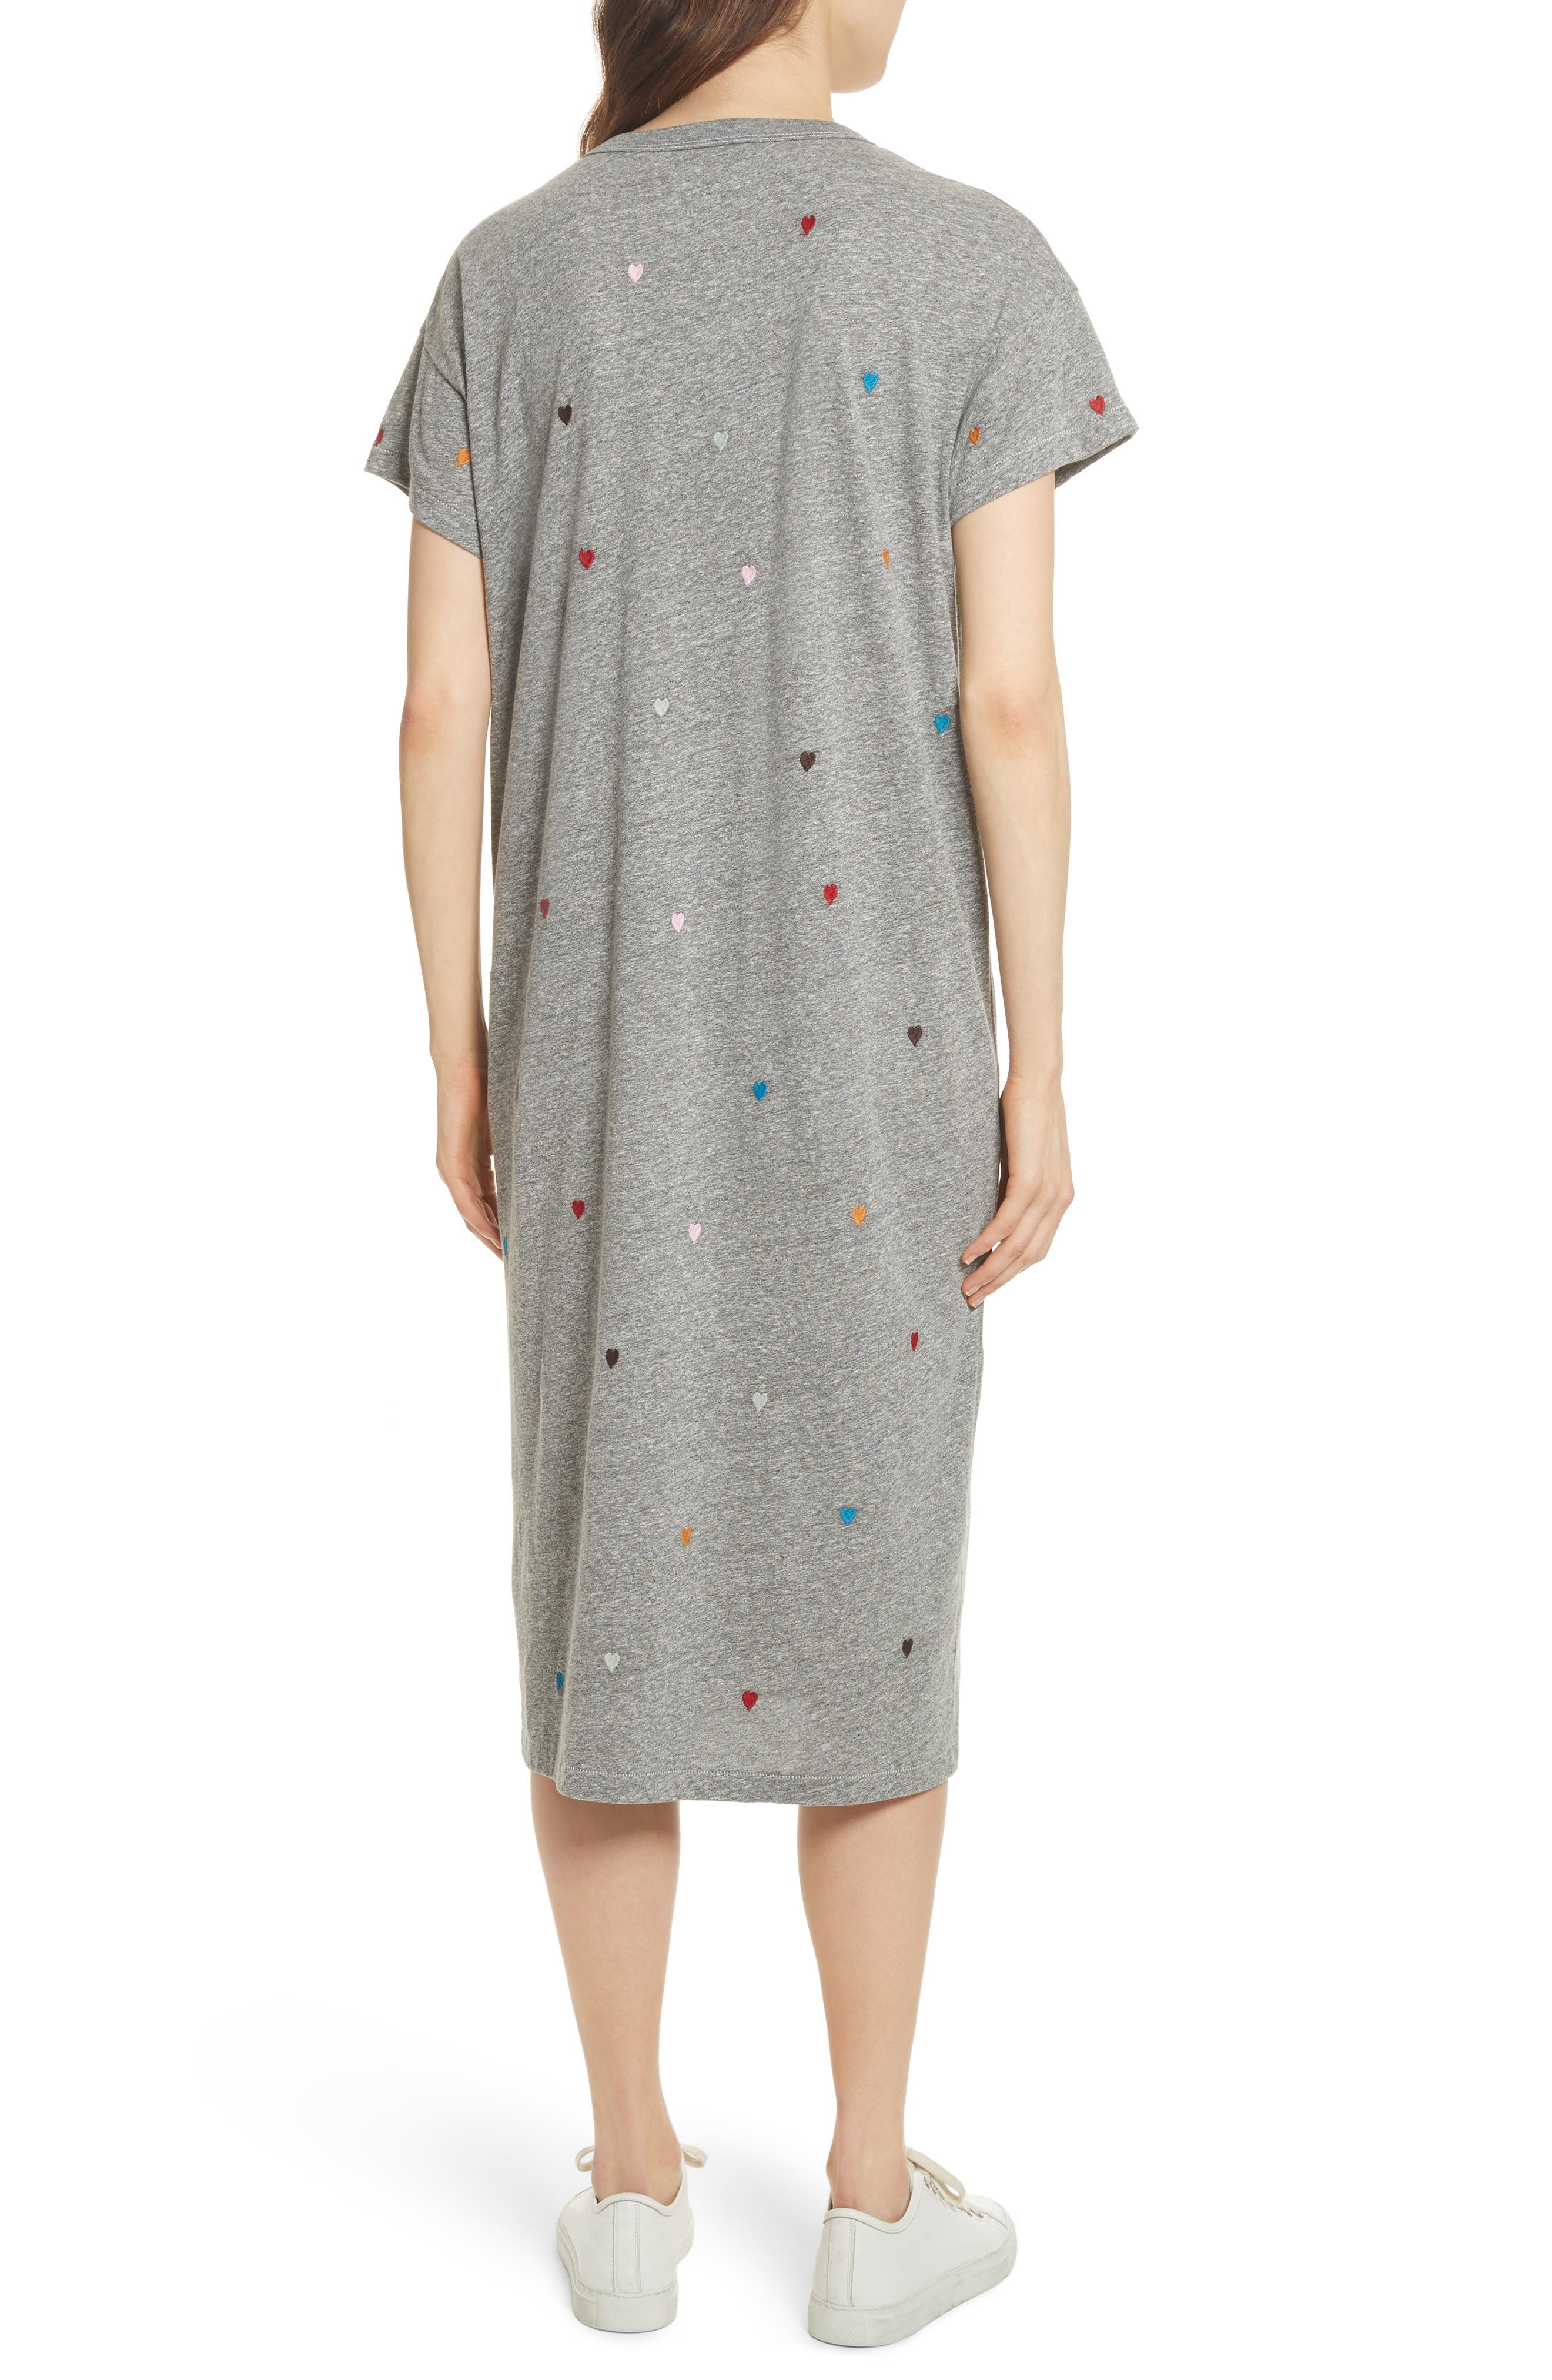 The Boxy Embroidered T-Shirt Dress,                             Alternate thumbnail 2, color,                             Grey/ Heart Embroidery